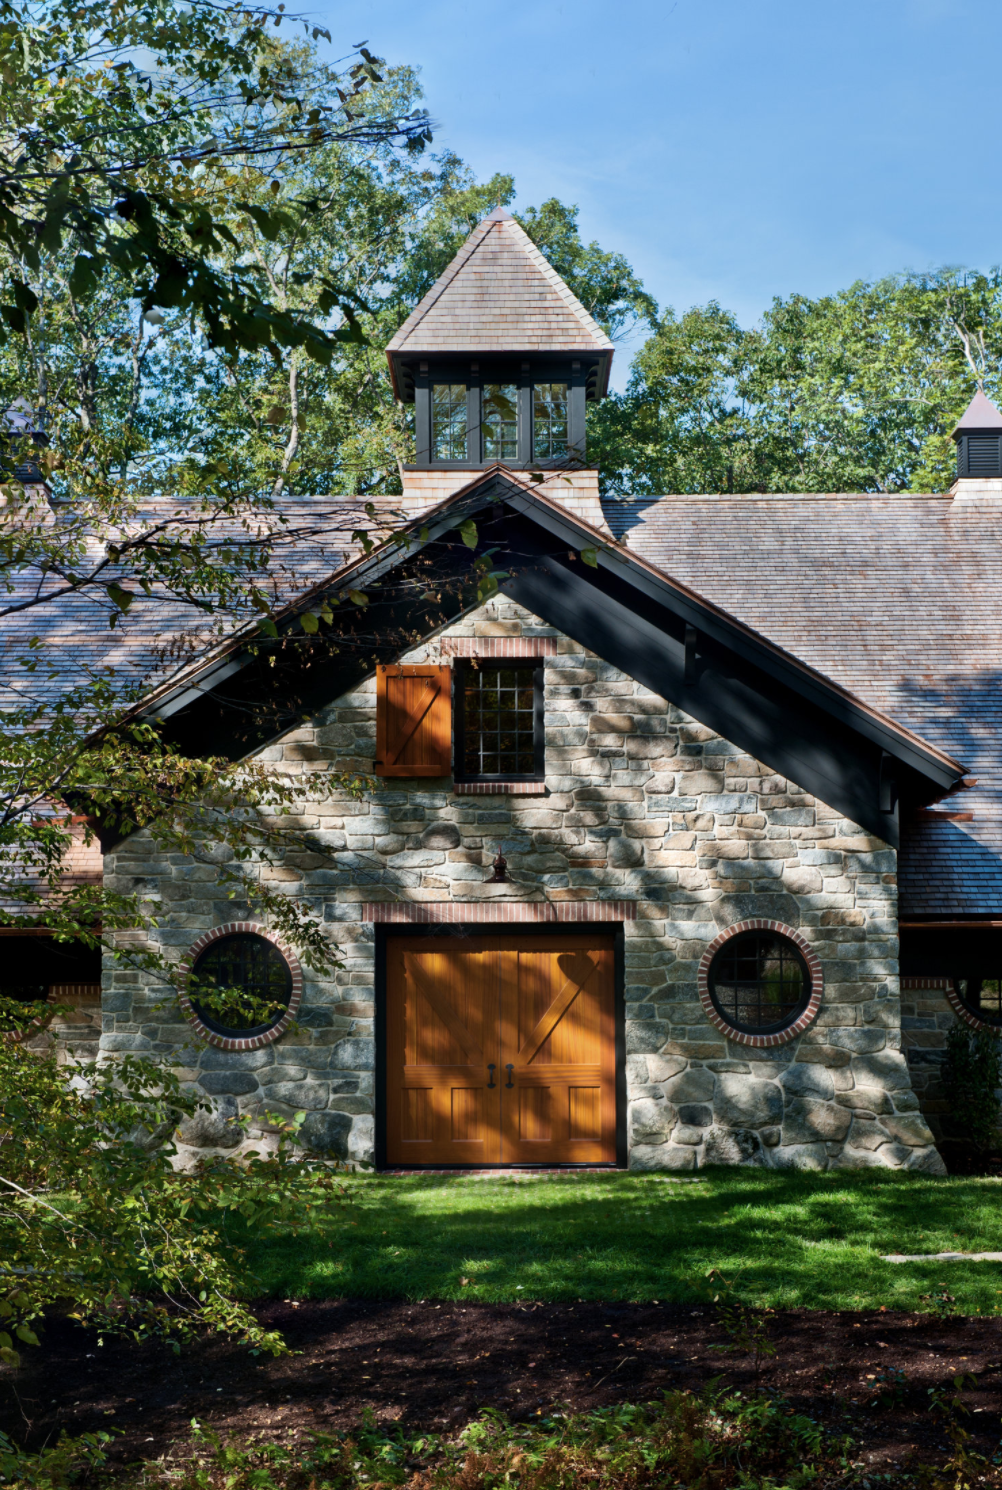 2014 AIA NEW YORK STATE DESIGN AWARD WINNER FOR CARRIAGE HOUSE